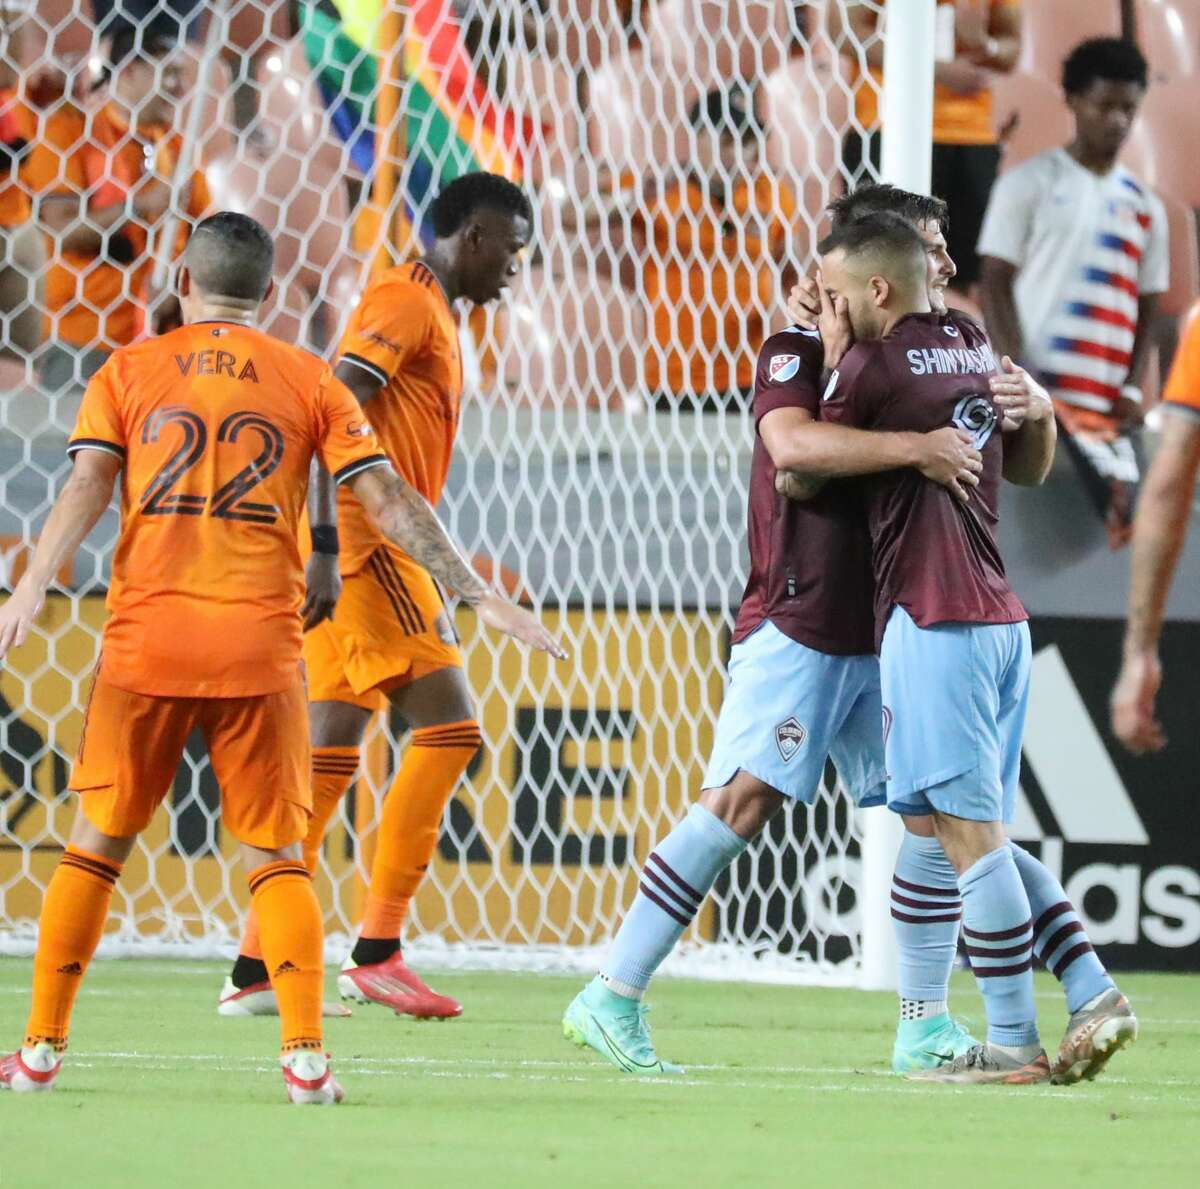 Colorado Rapids forward Andre Shinyashiki (9) hugs Diego Rubio (11) after an attempted shot on Houston Dynamo goalkeeper Marko Maric (1) during the second half of an MLS soccer game at BBVA Stadium, Saturday, August 14, 2021, in Houston.